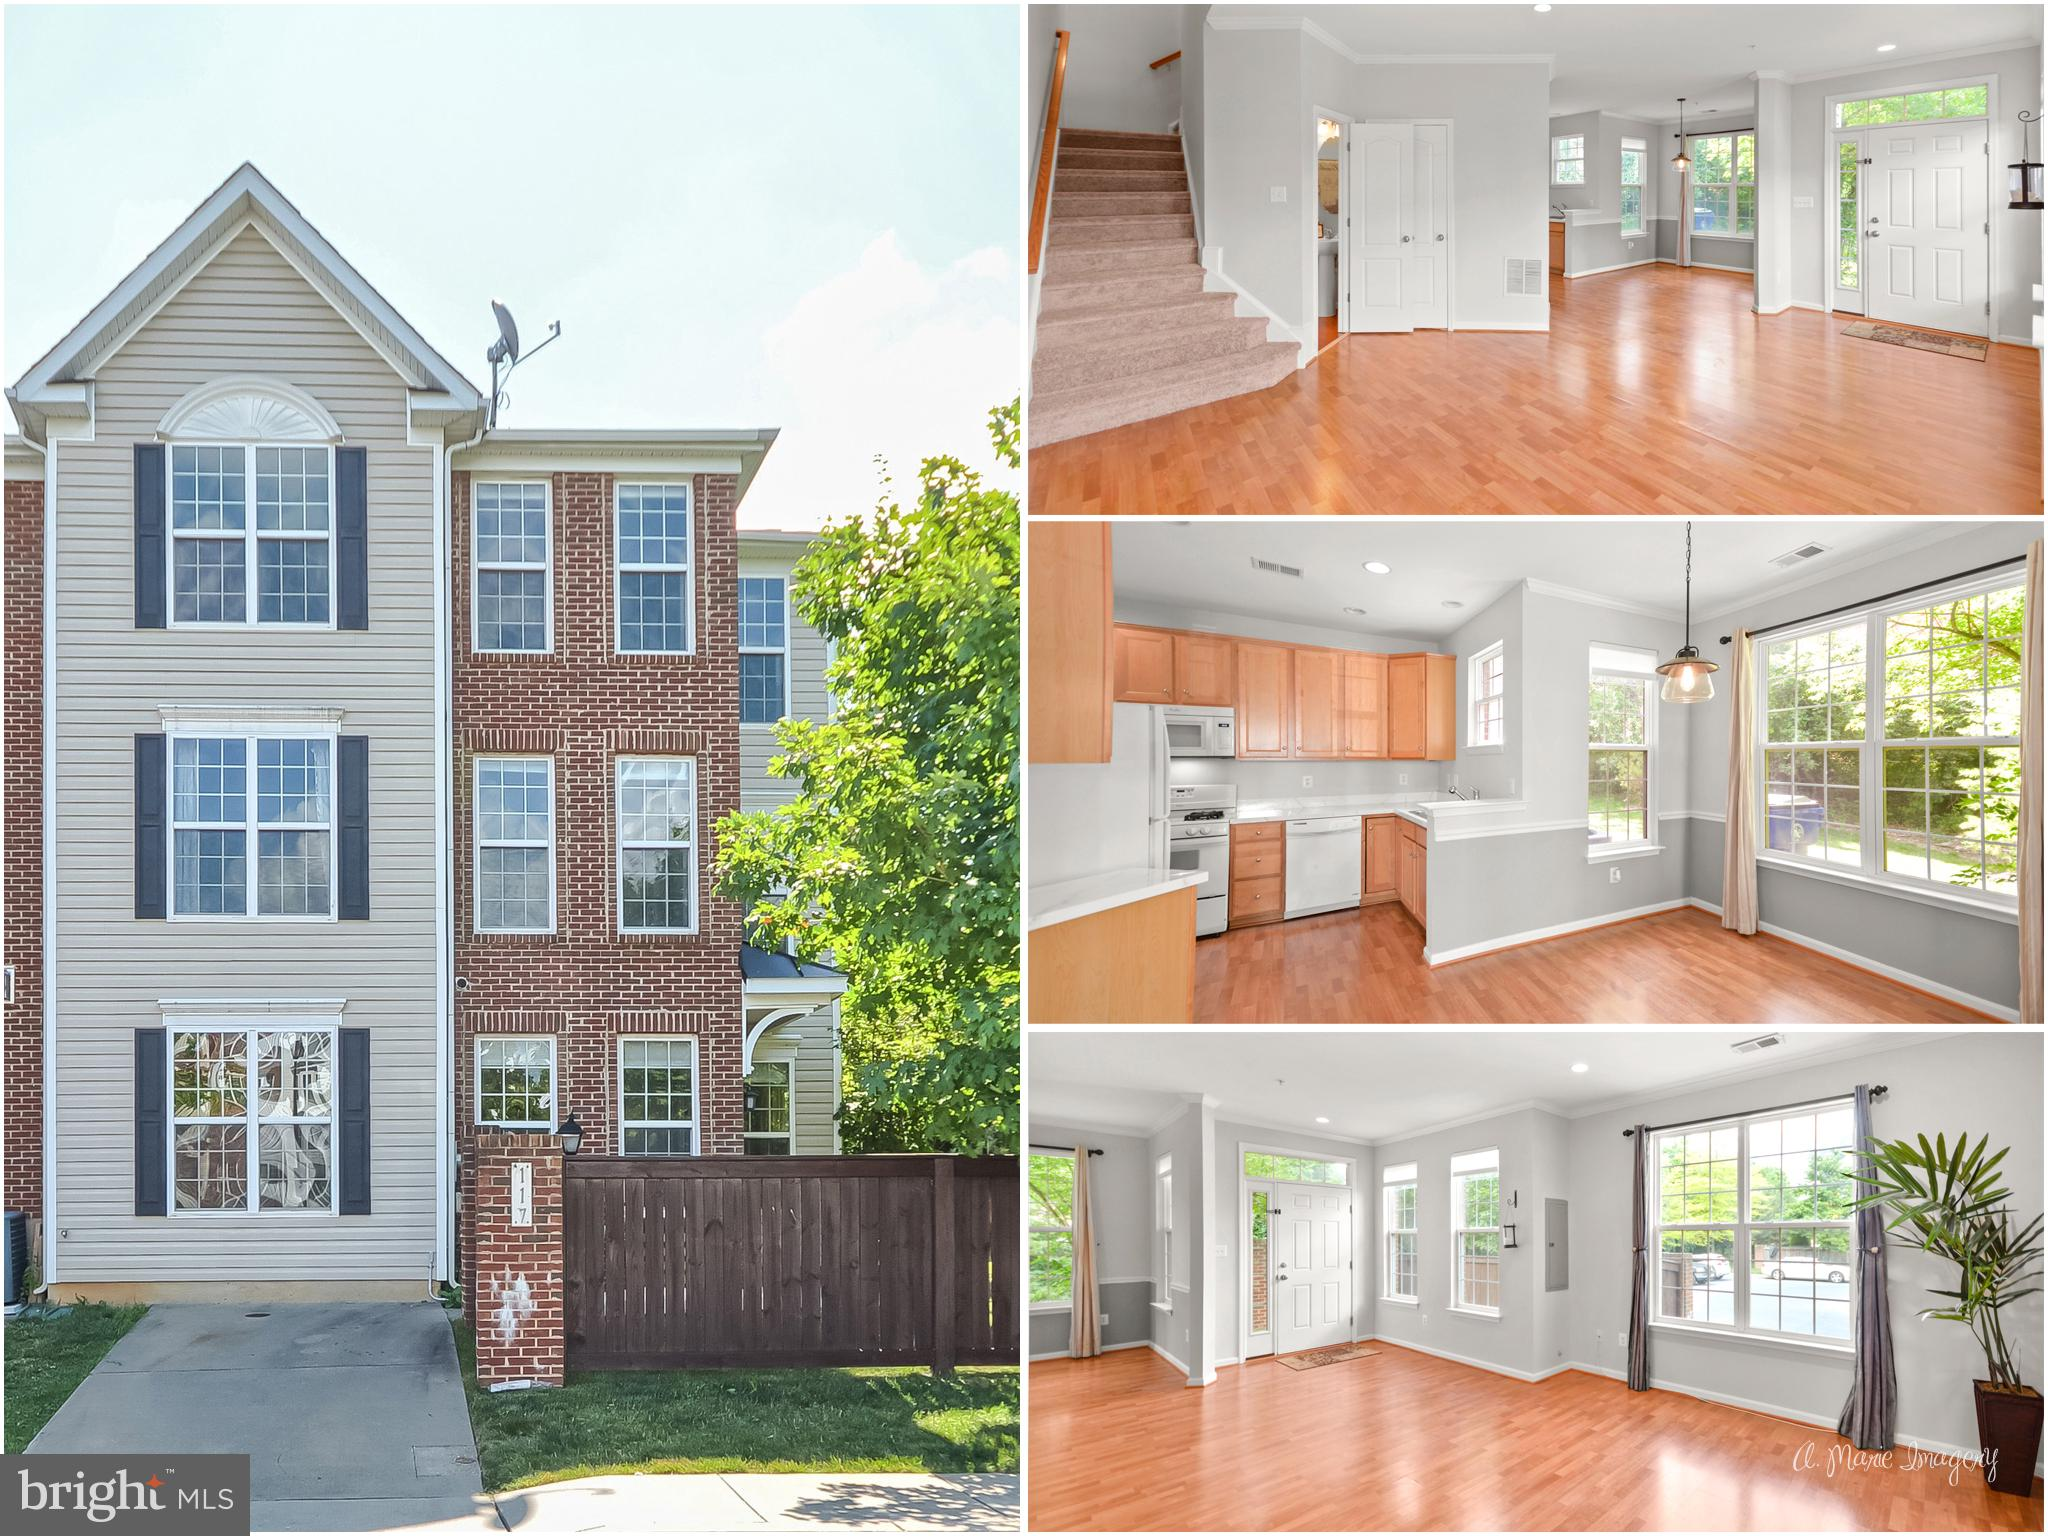 Welcome home to this end-unit townhome that is ready for you to move right in and start living! Back